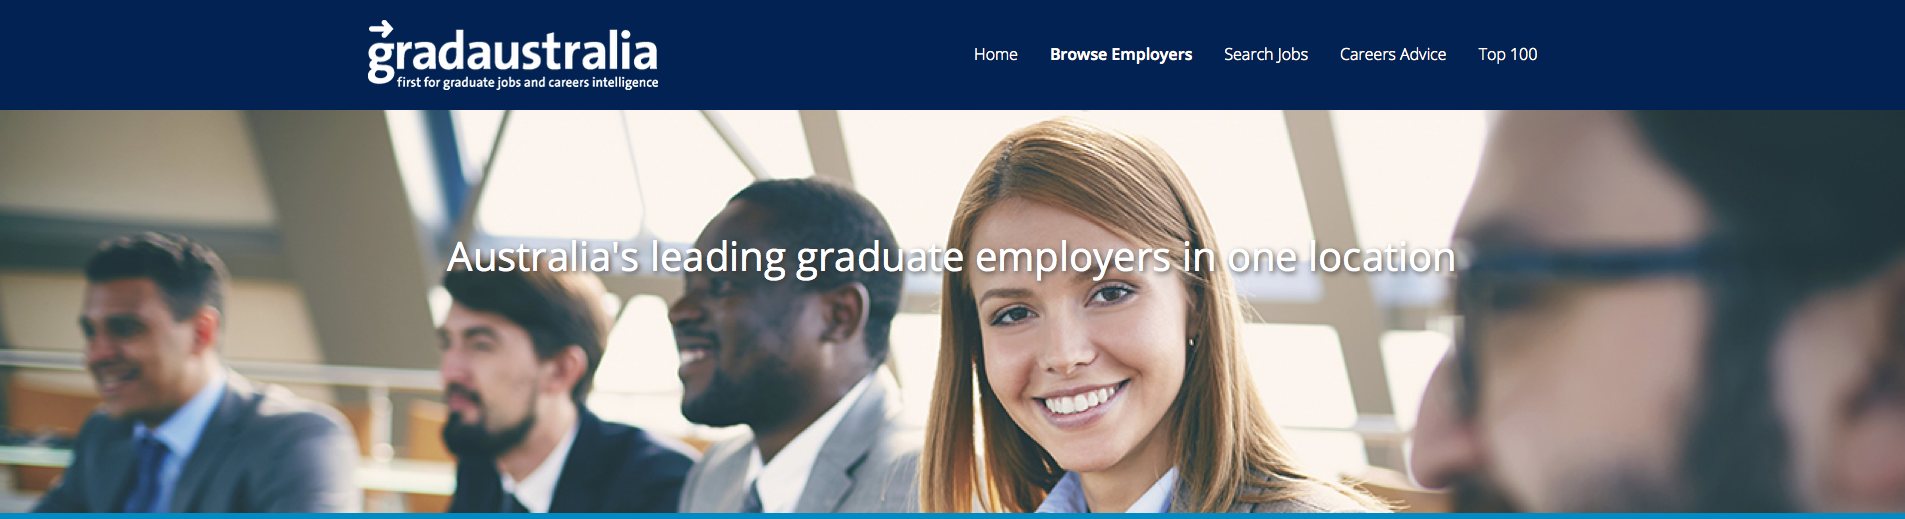 GradAustralia website